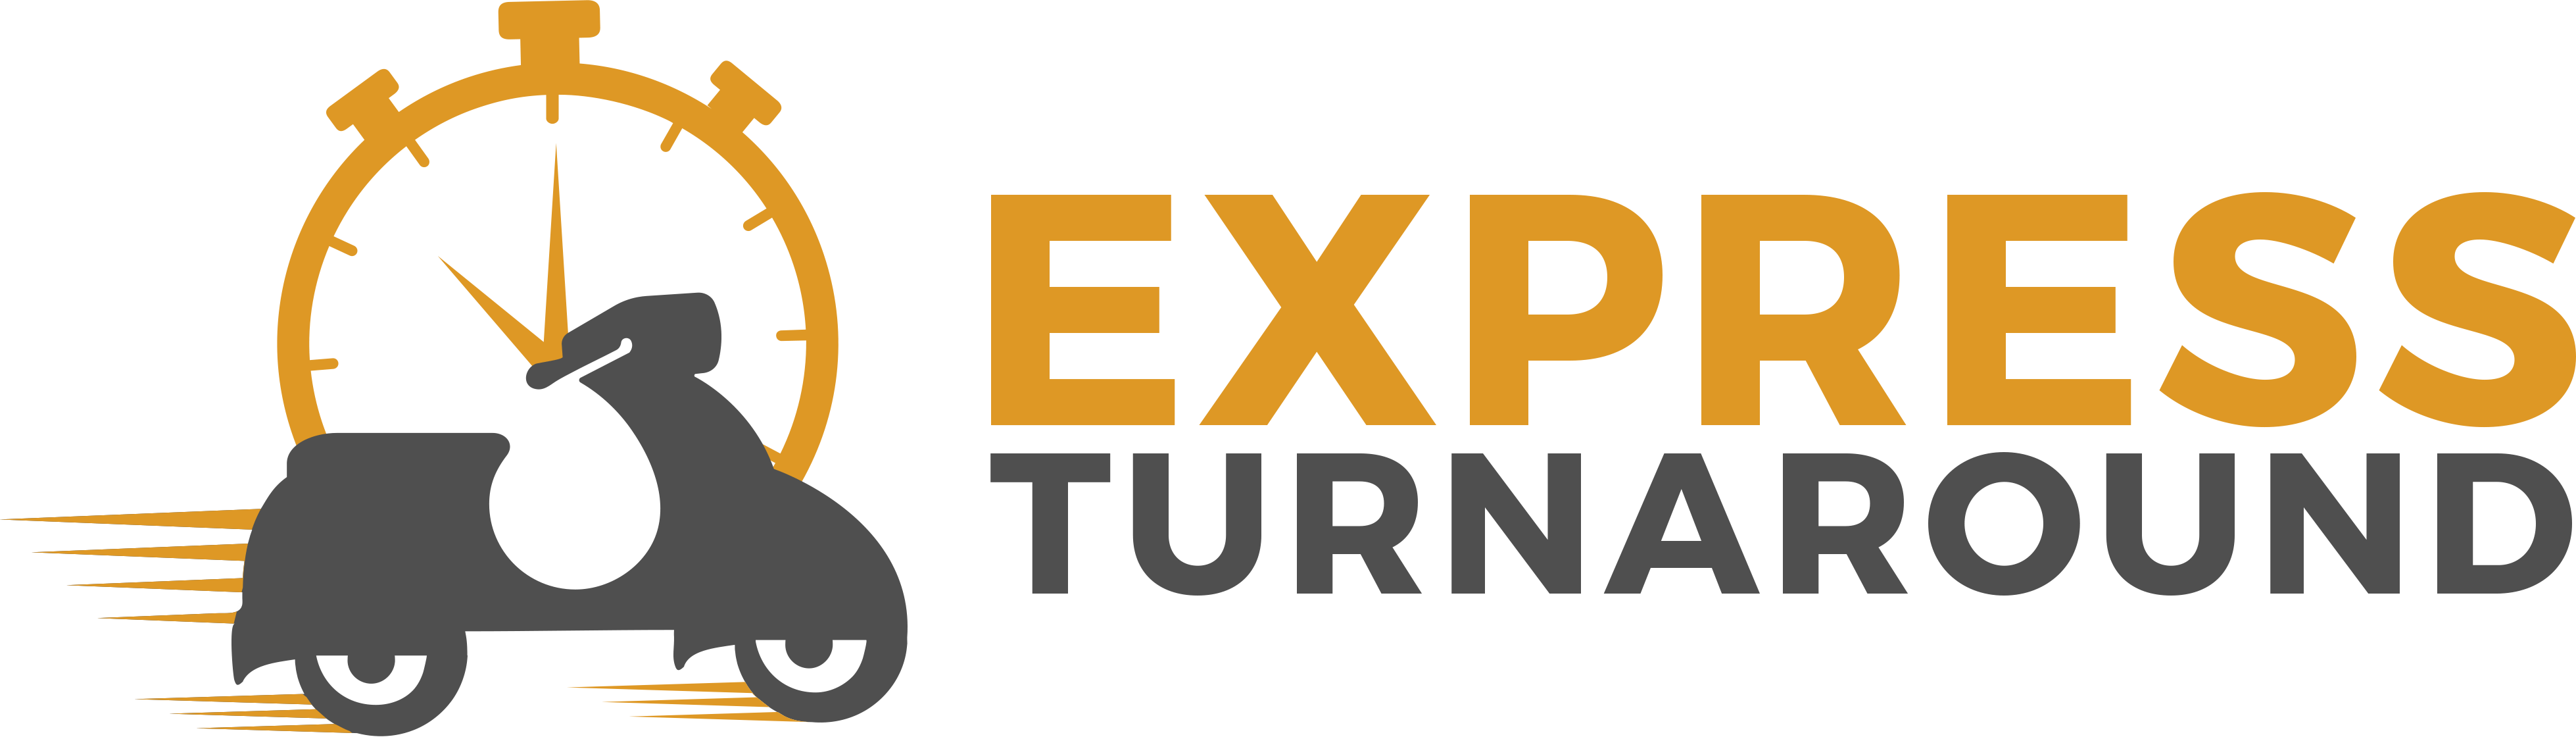 Express Turnaround